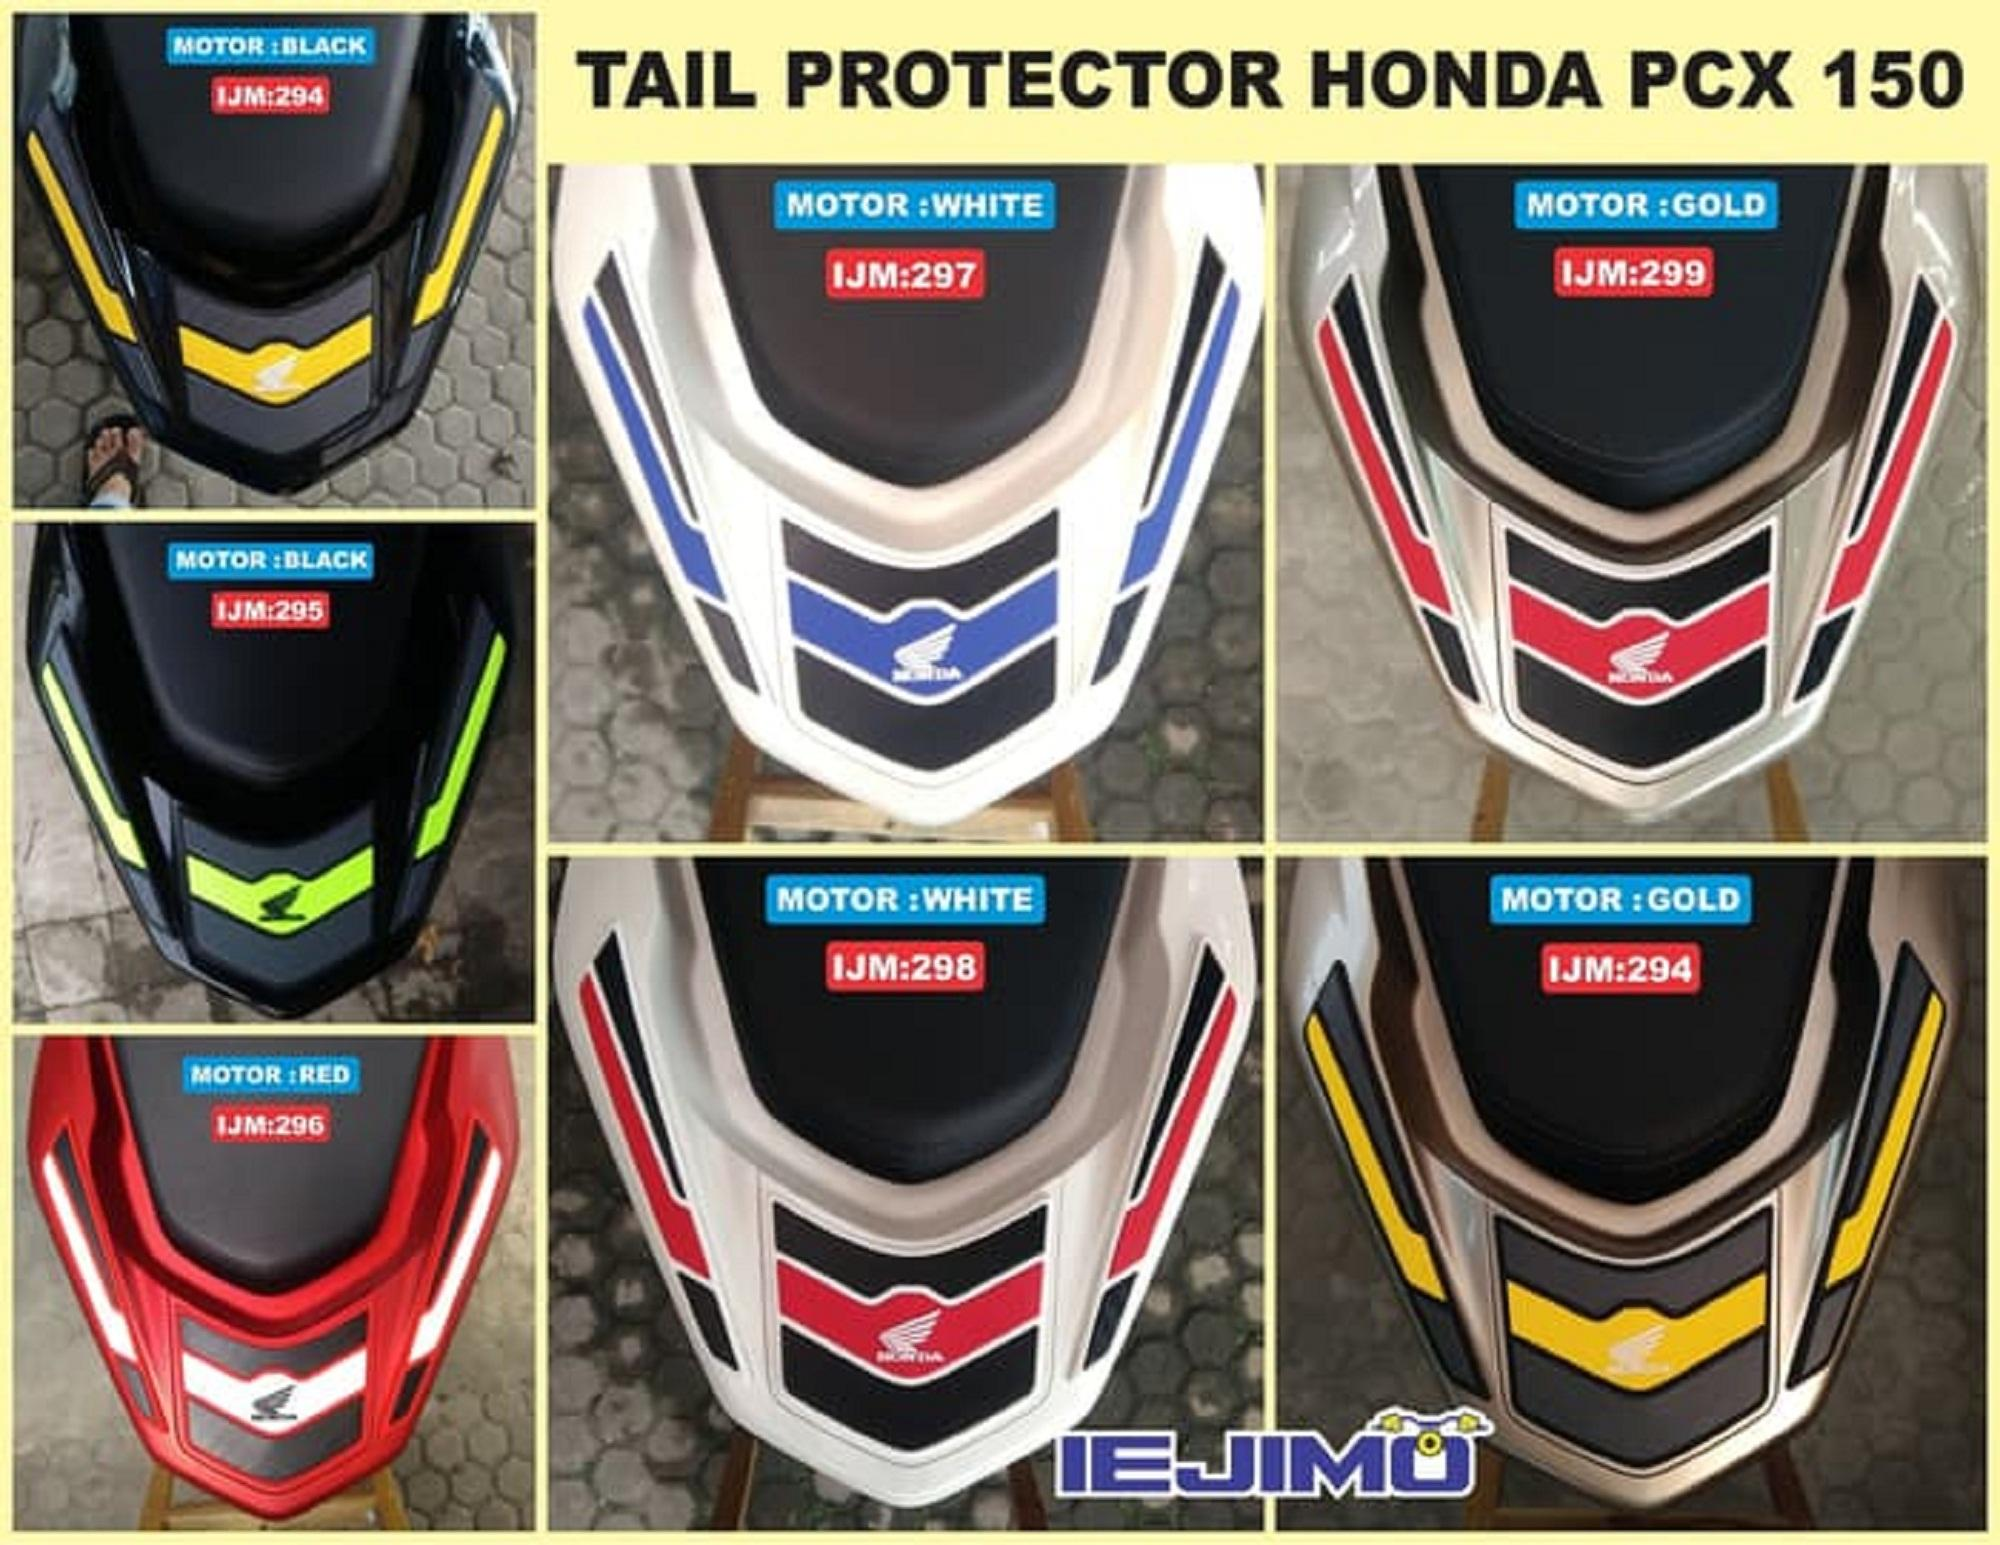 ... TAIL PROTECTOR ALL NEW HONDA PCX 150 - PELINDUNG TAIL PCX 150 - 5